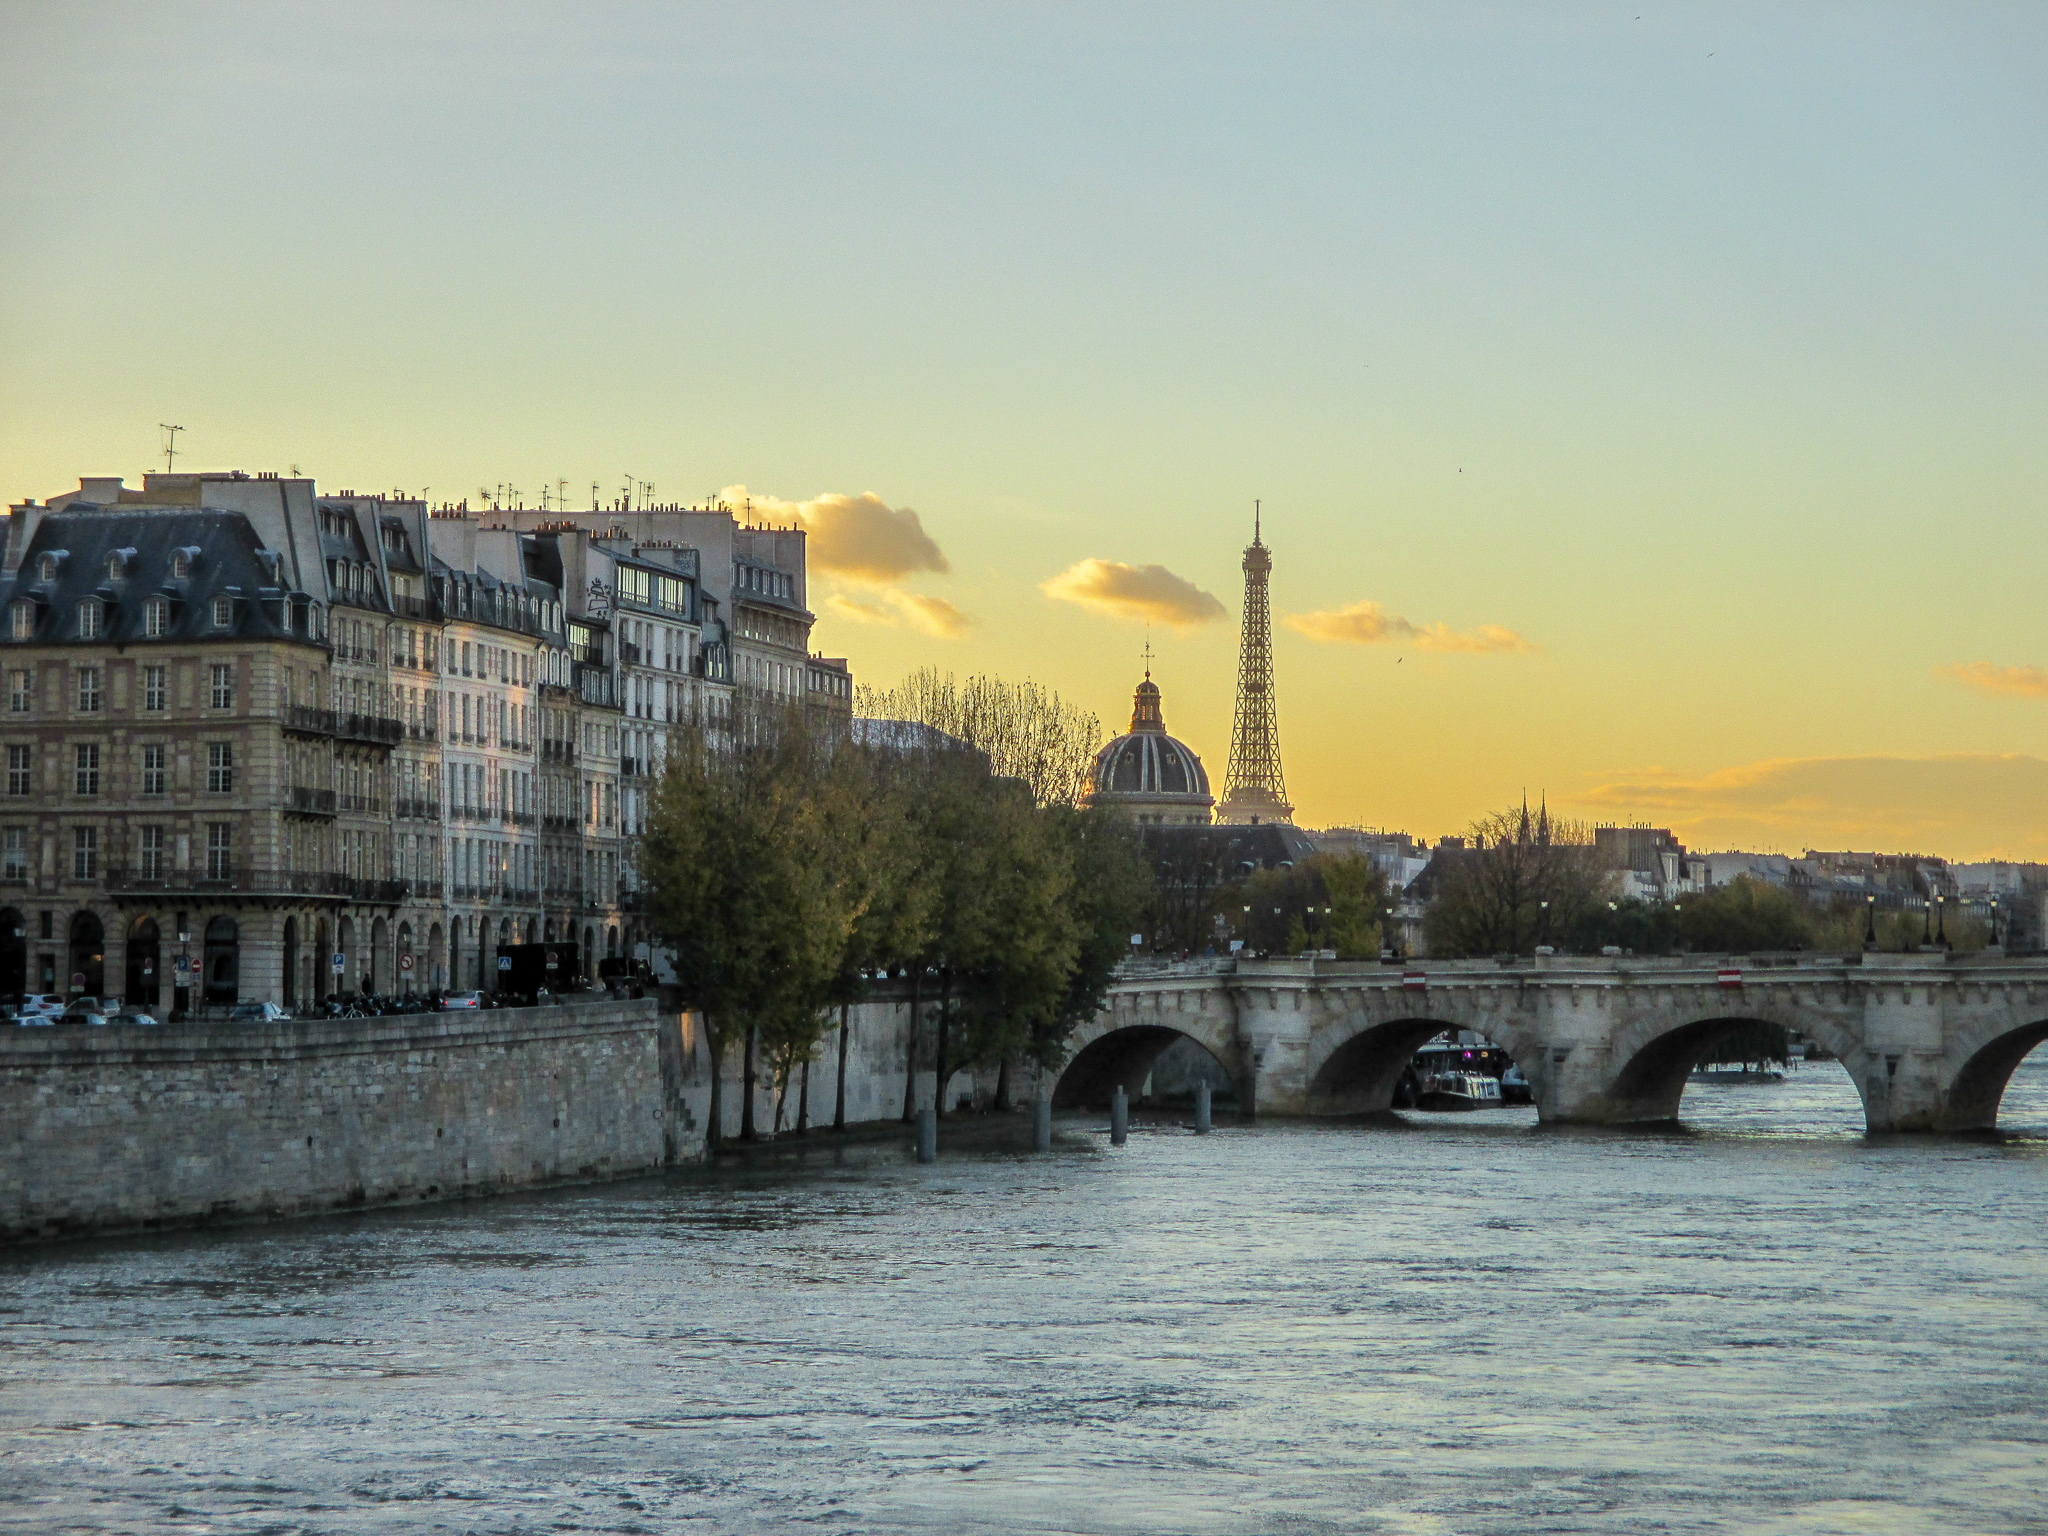 14 days in europe itinerary: don't skip over paris